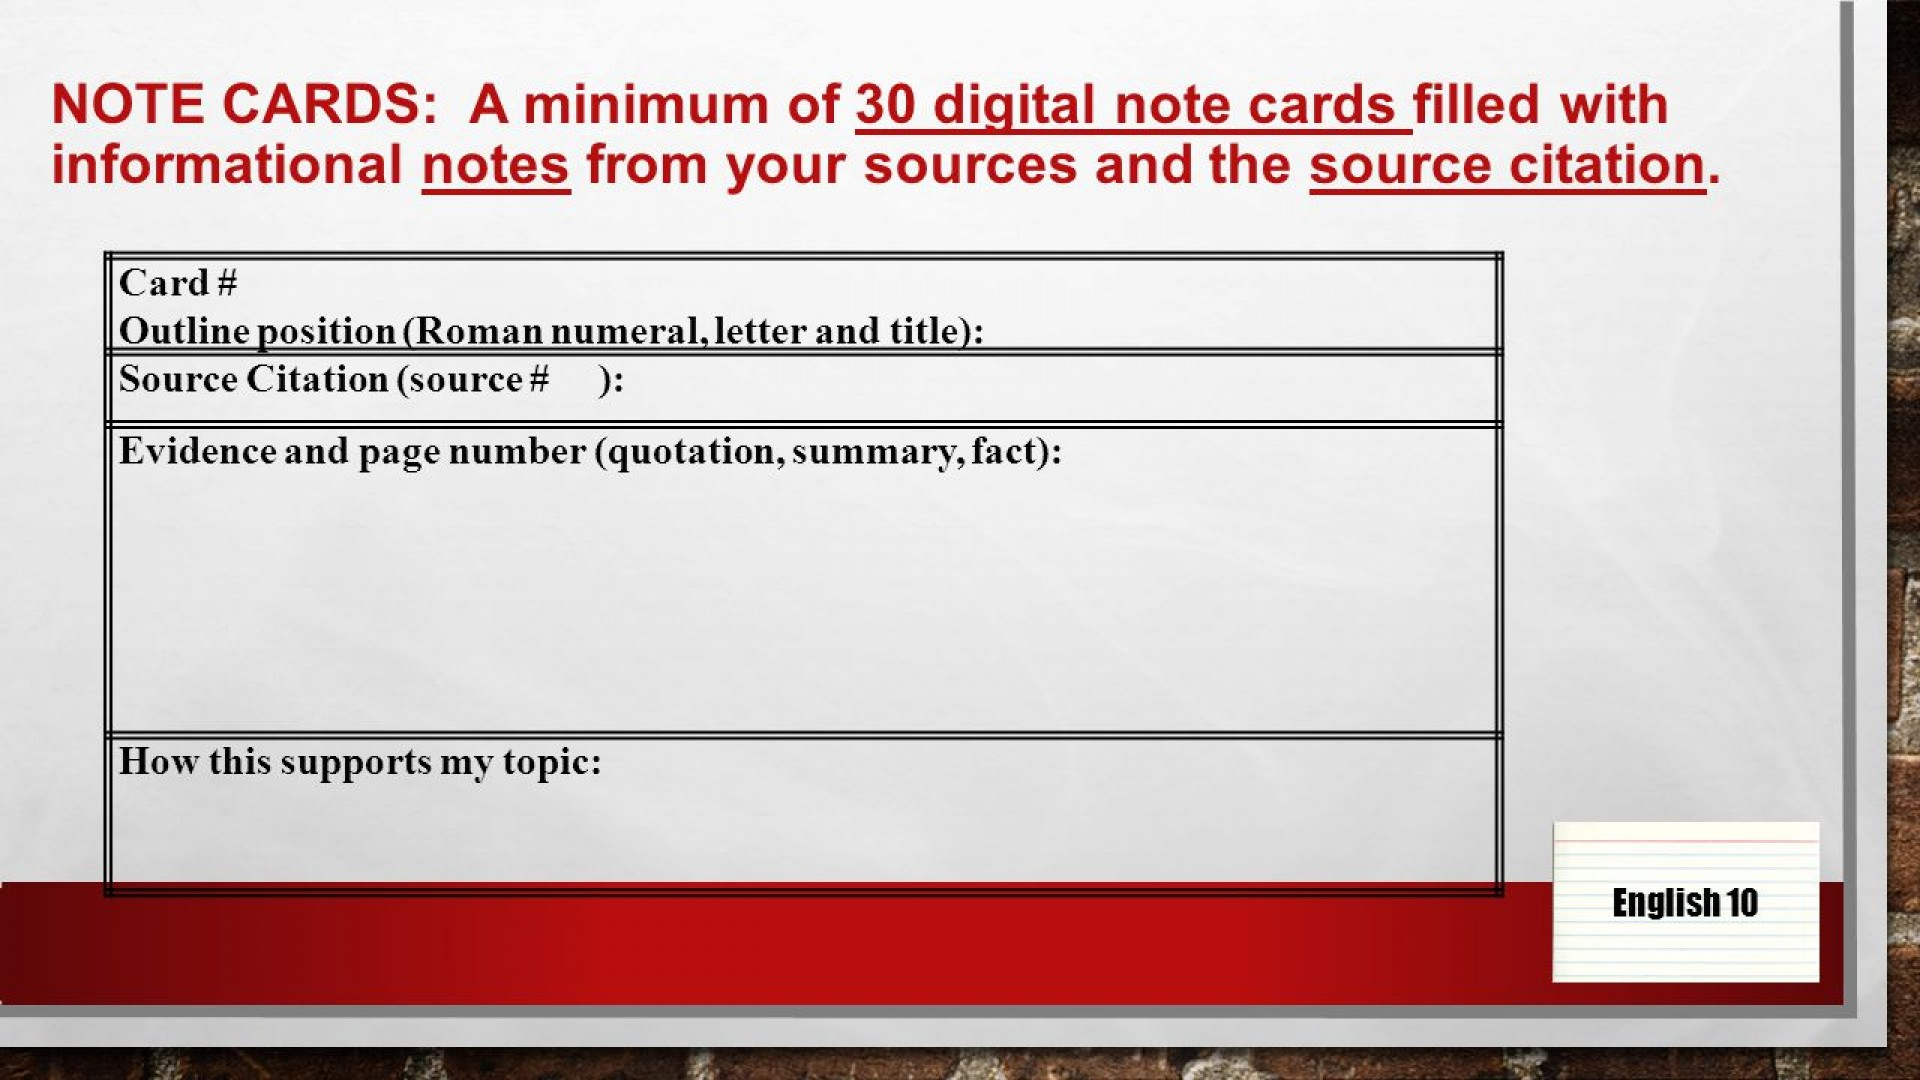 002 Research Paper Slide 4 Notecards Top For Formatting Papers Mla 1920